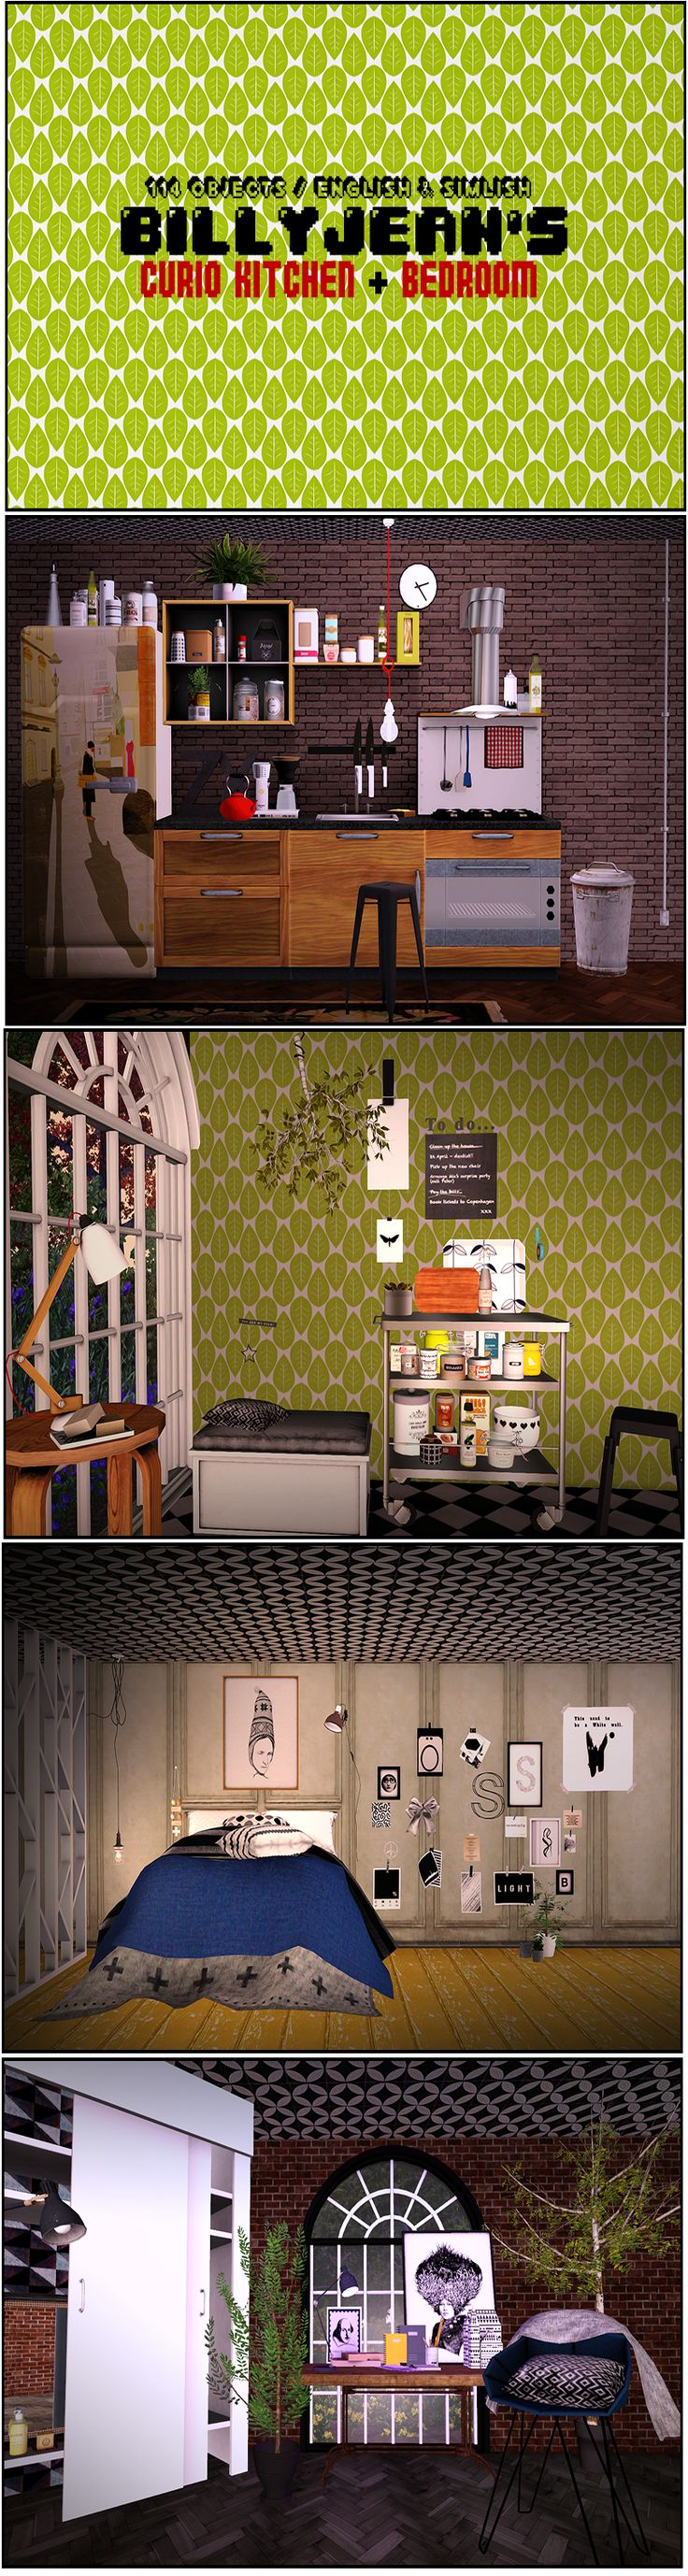 206 best images about sims 3 on pinterest dots sims 4 and warm - Sims 3 Billyjean S Curio Kitchen Bedroom Download At Http Www